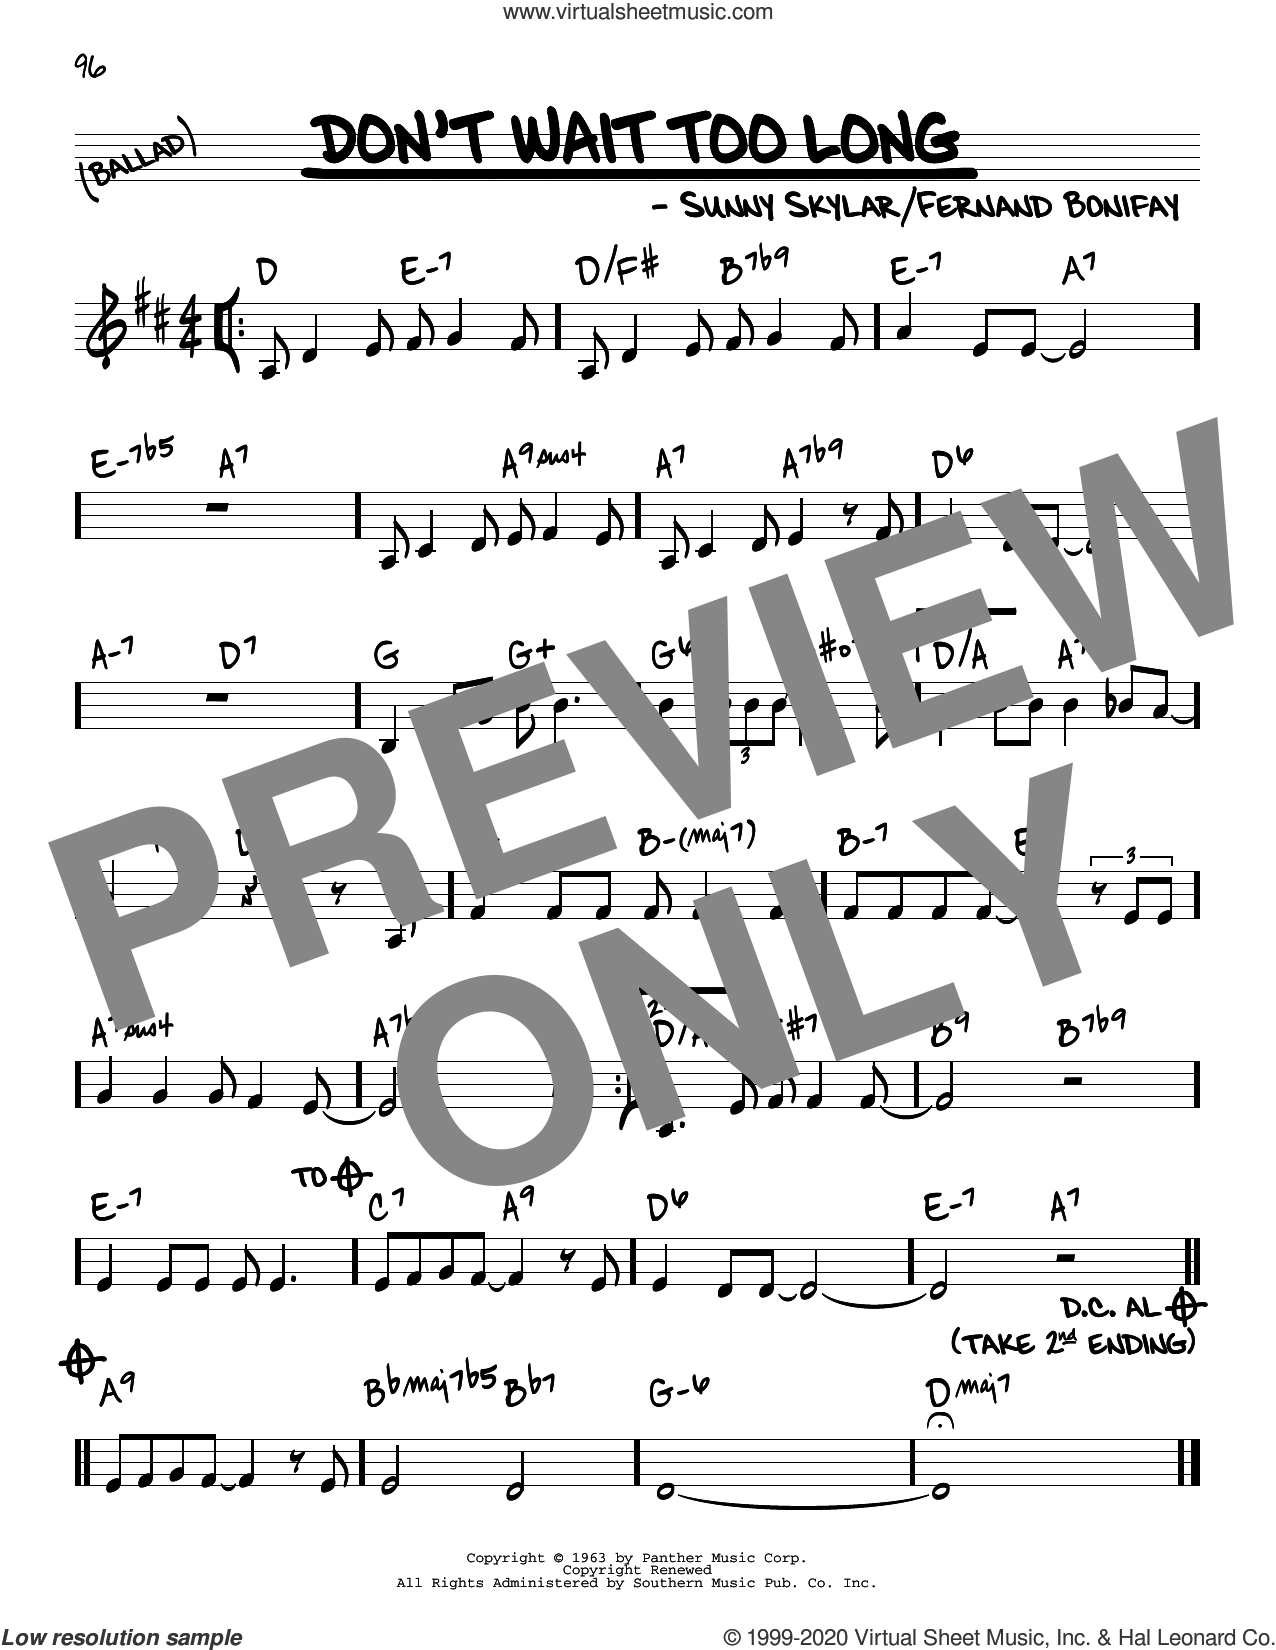 Don't Wait Too Long sheet music for voice and other instruments (real book) by Sunny Skylar and Fernand Bonifay, intermediate skill level